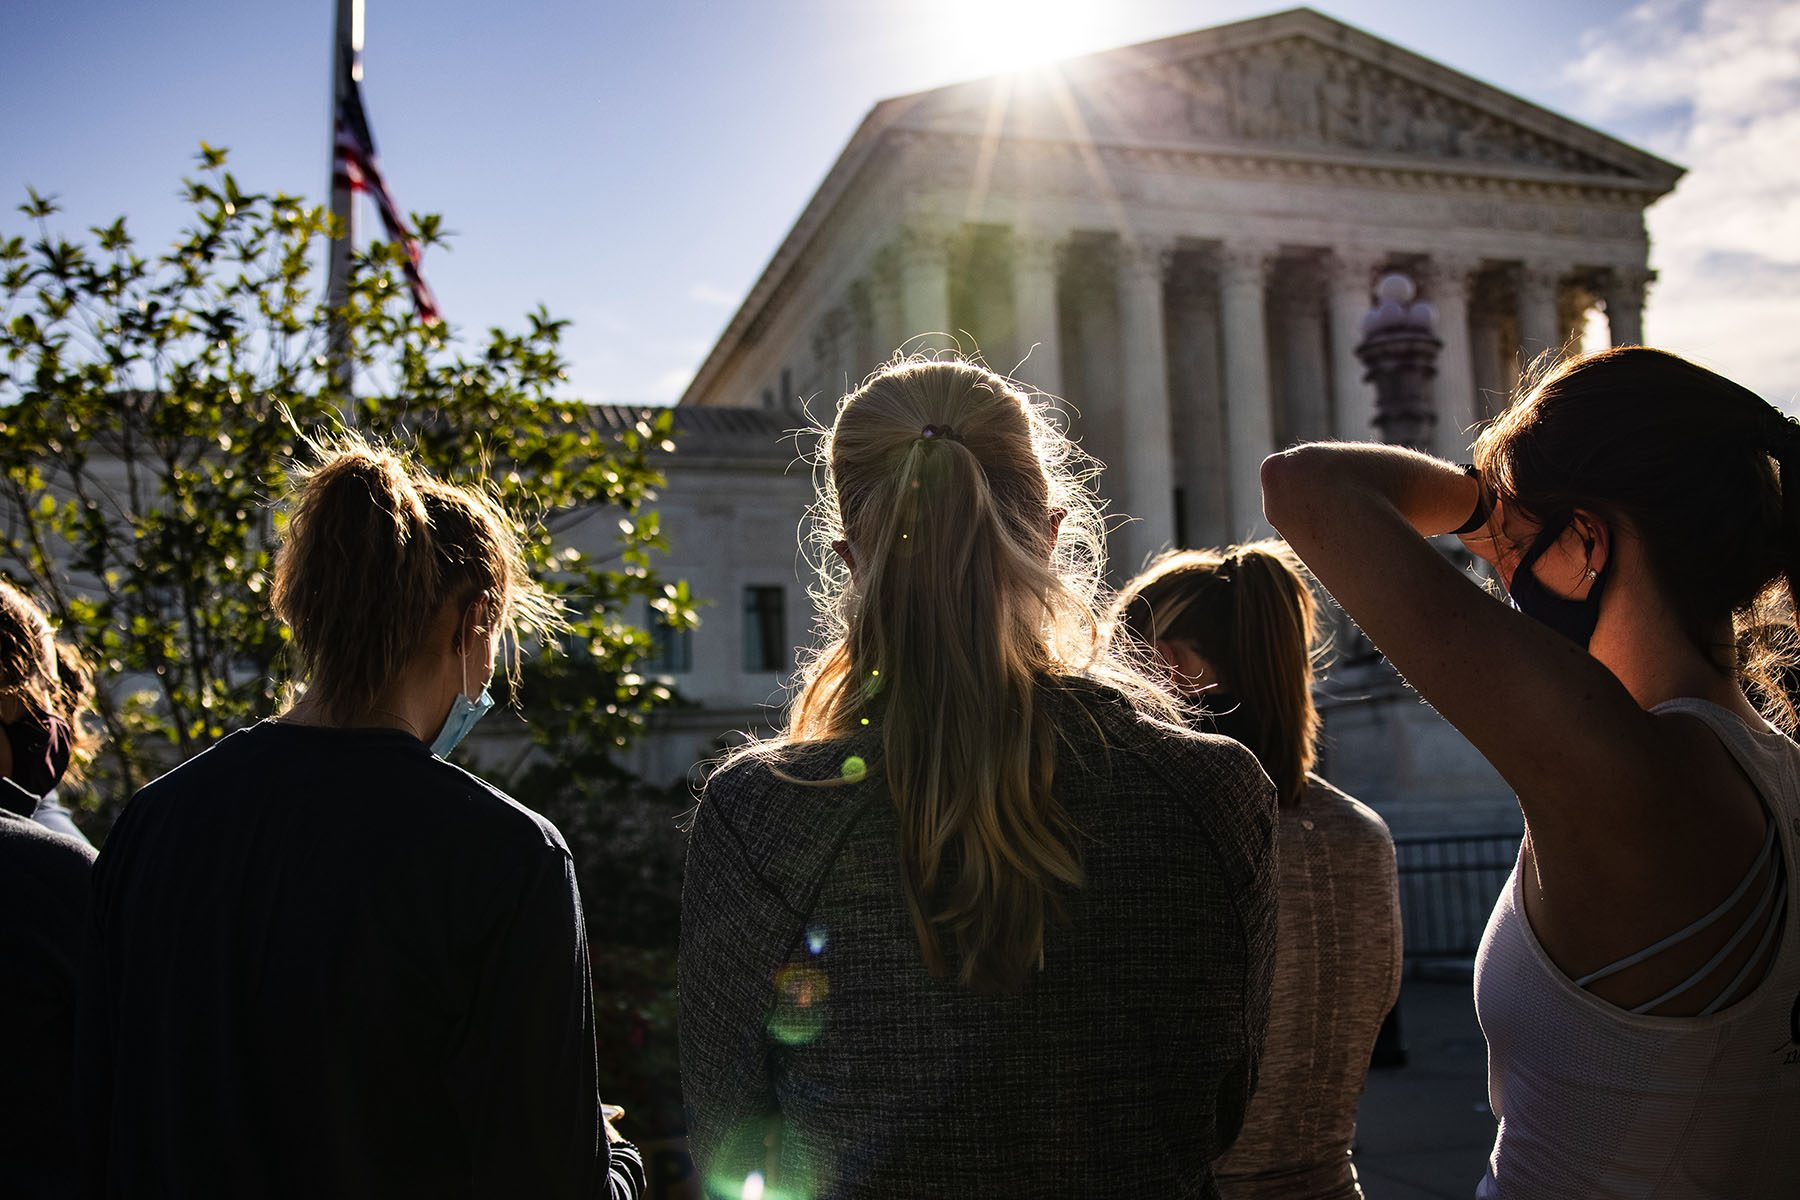 Women are seen gathering in front of the U.S. Supreme Court.